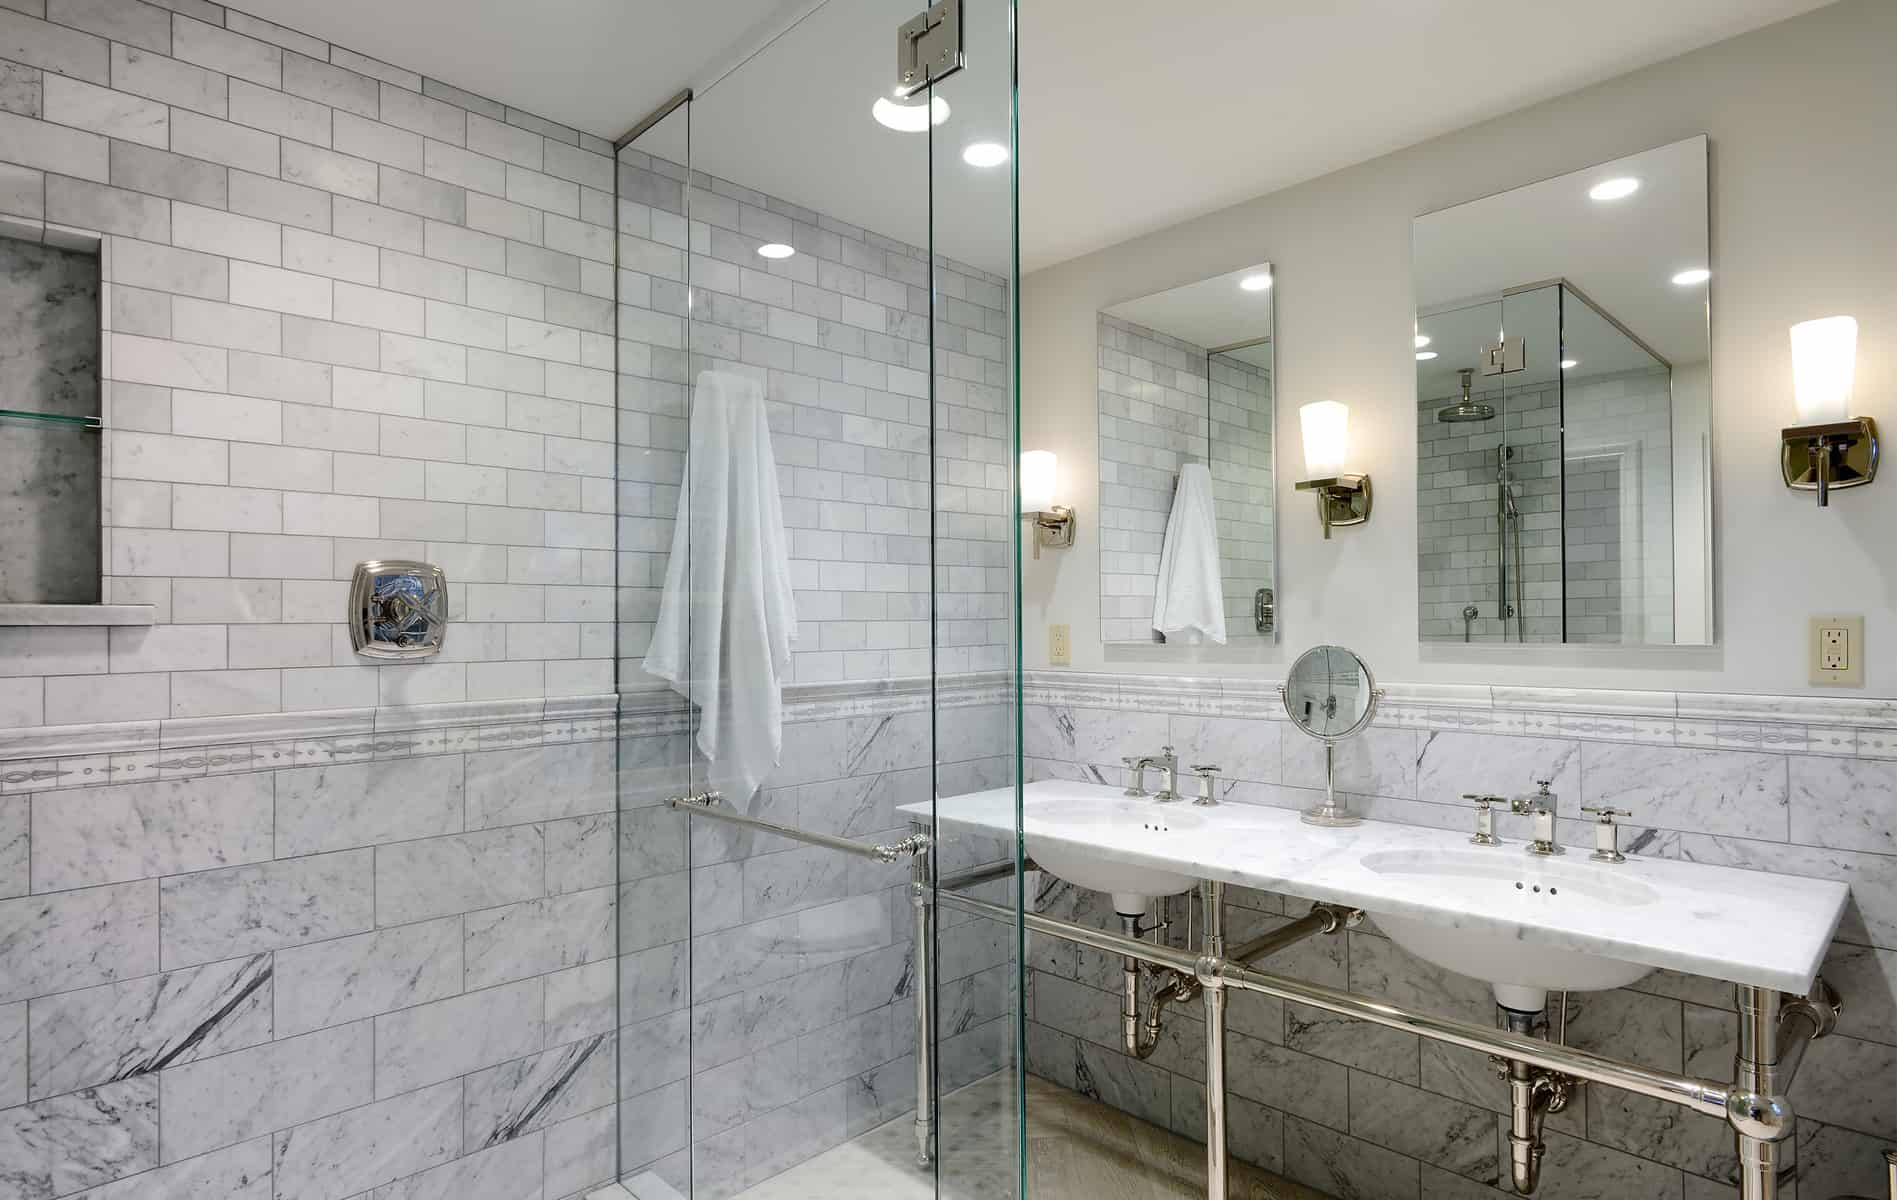 7 smart strategies for bathroom remodeling biederman for Pictures of remodel bathrooms